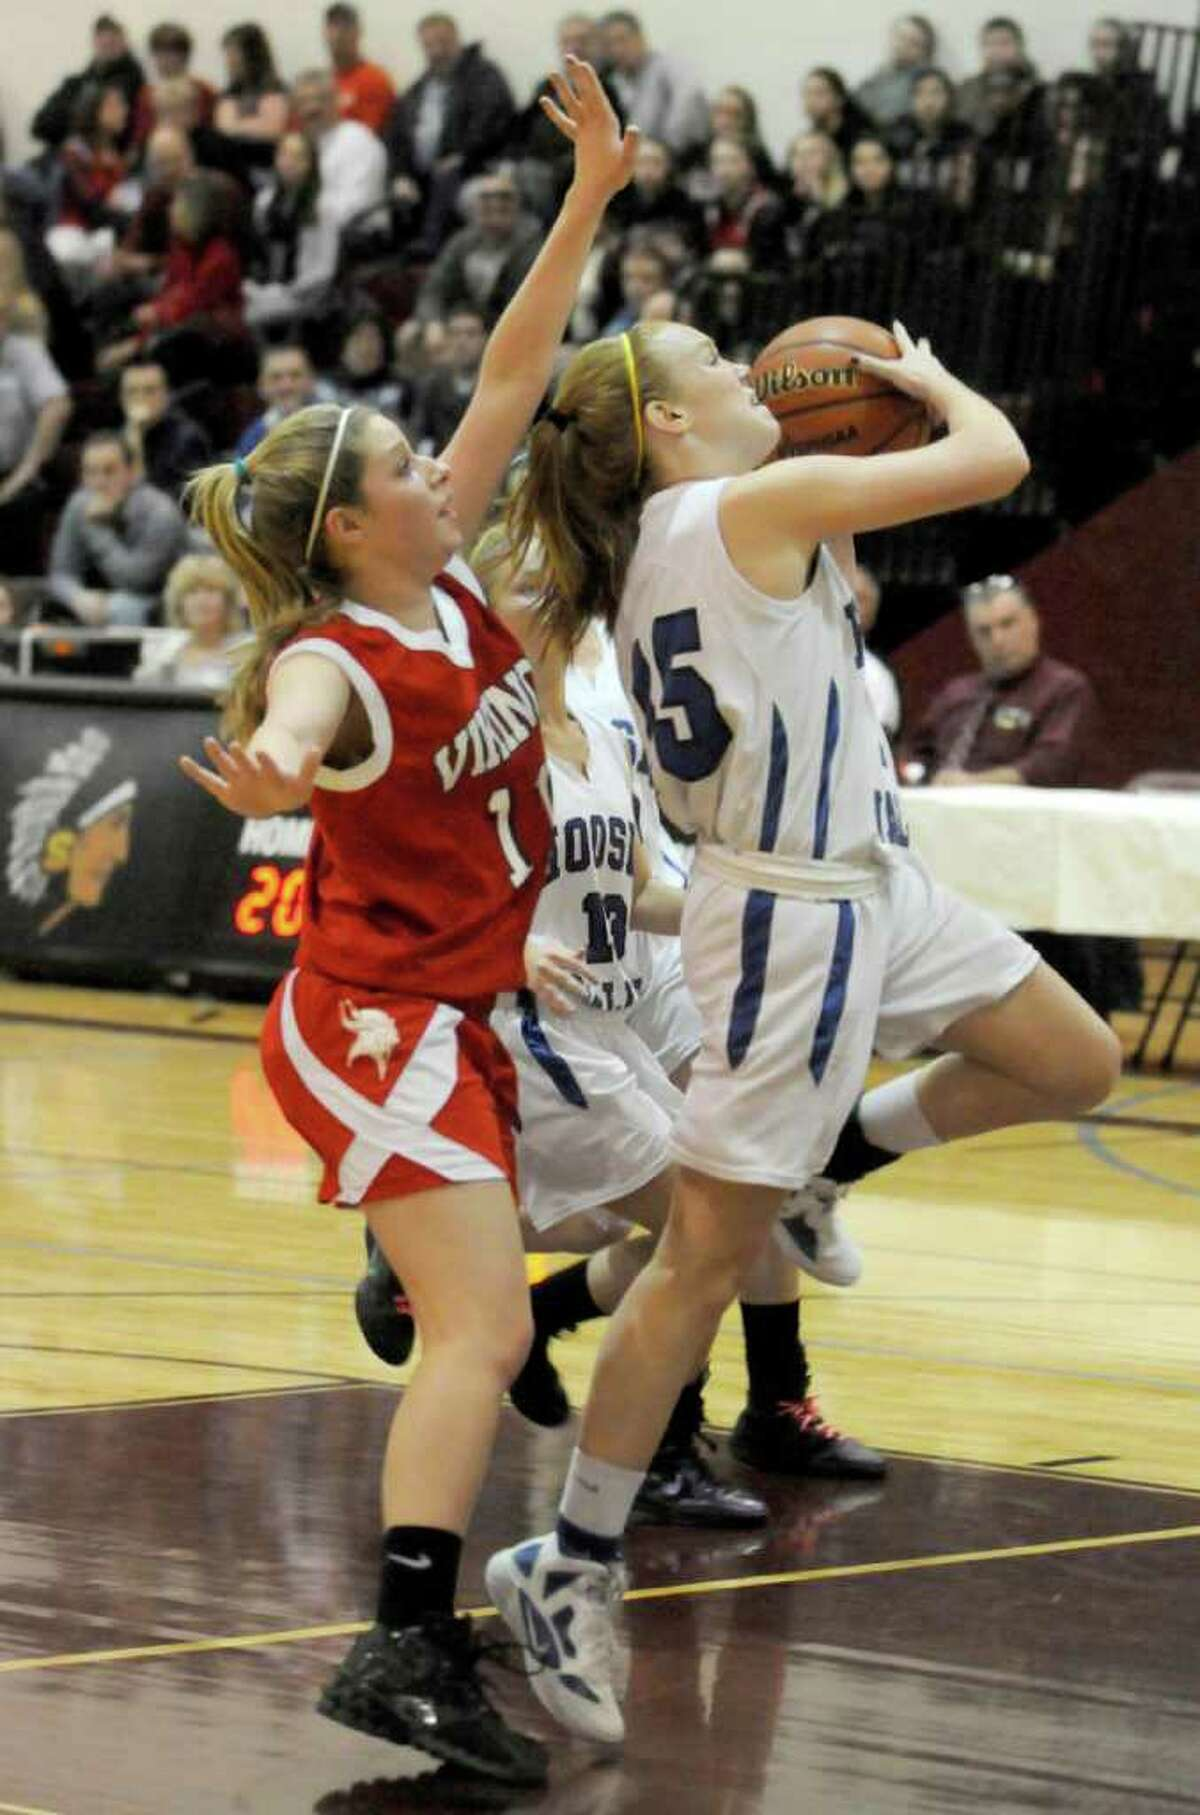 Hoosic Valley's Whitney Kugler drives to the basket during their girl's high school Class C state regional against Moriah in Stillwater,N.Y. March 6,2011 ( Michael P. Farrell/Times Union )